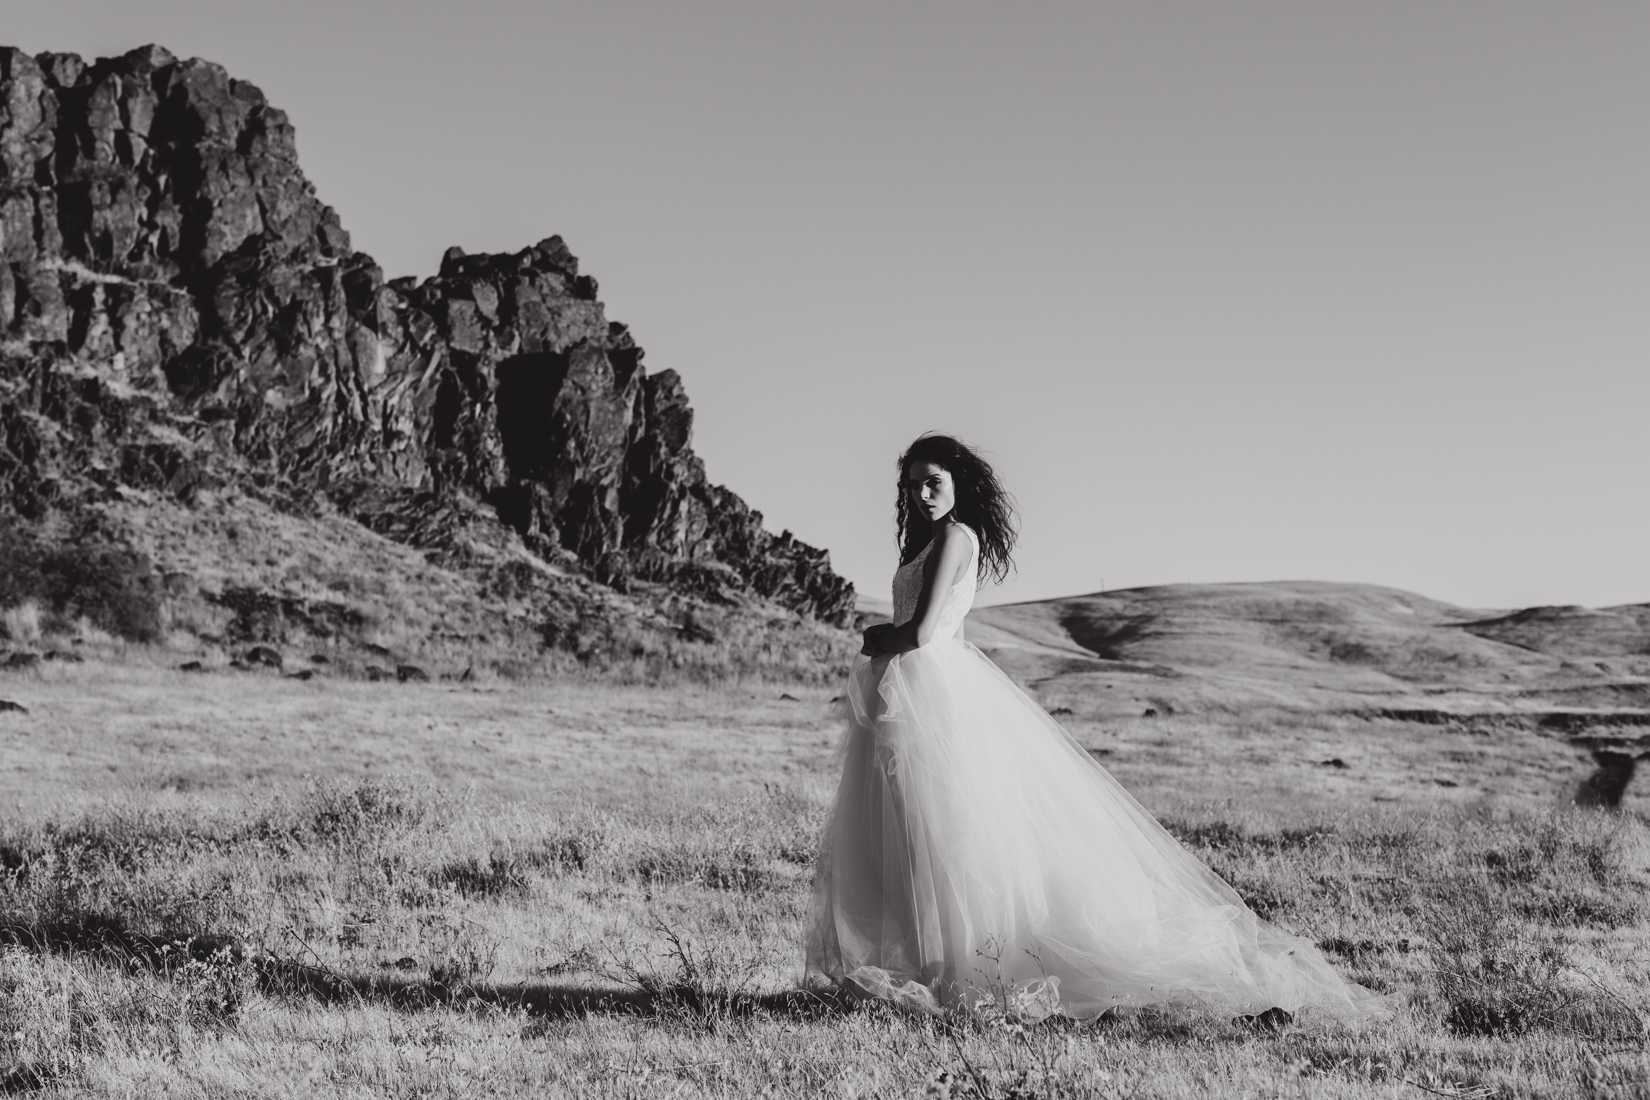 Black and white photo of bride in white wedding dress